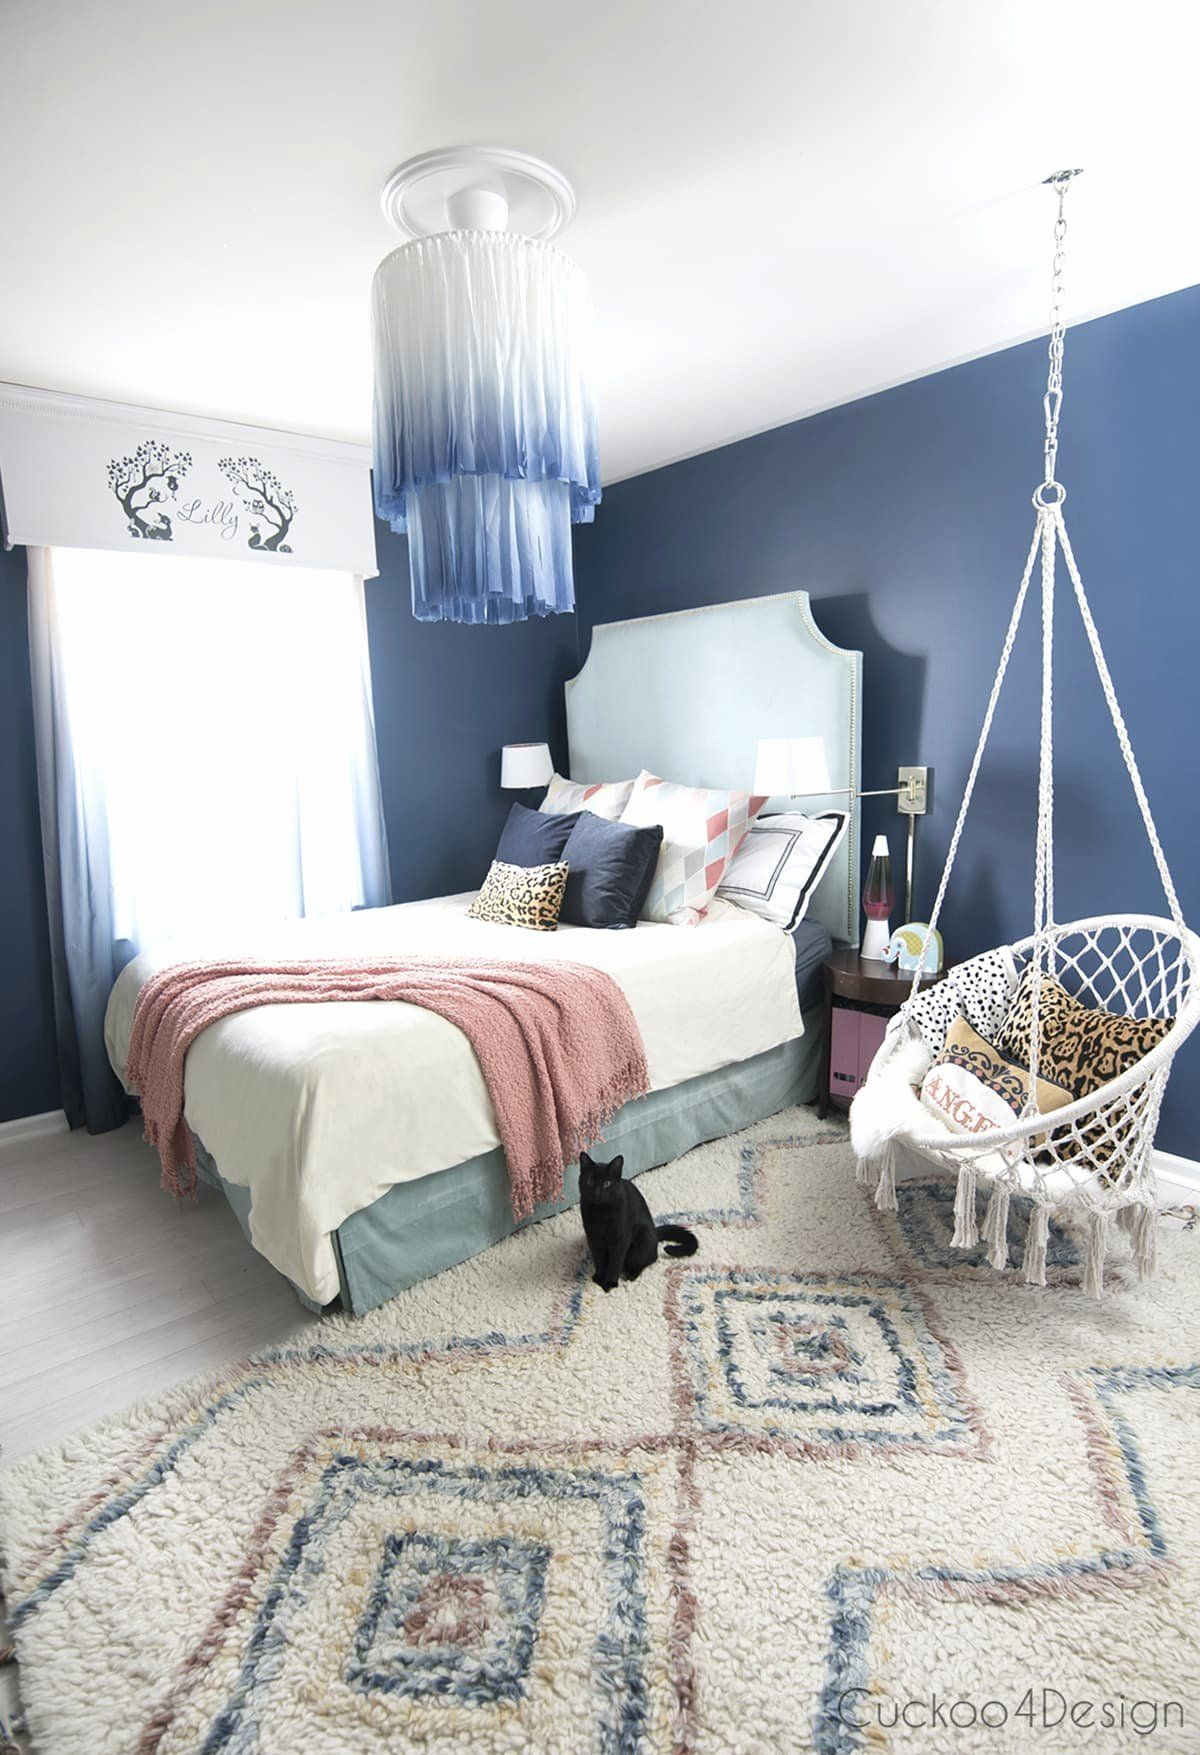 Girls Bedroom Ideas On A Budget New Cheap Ways to Decorate ...